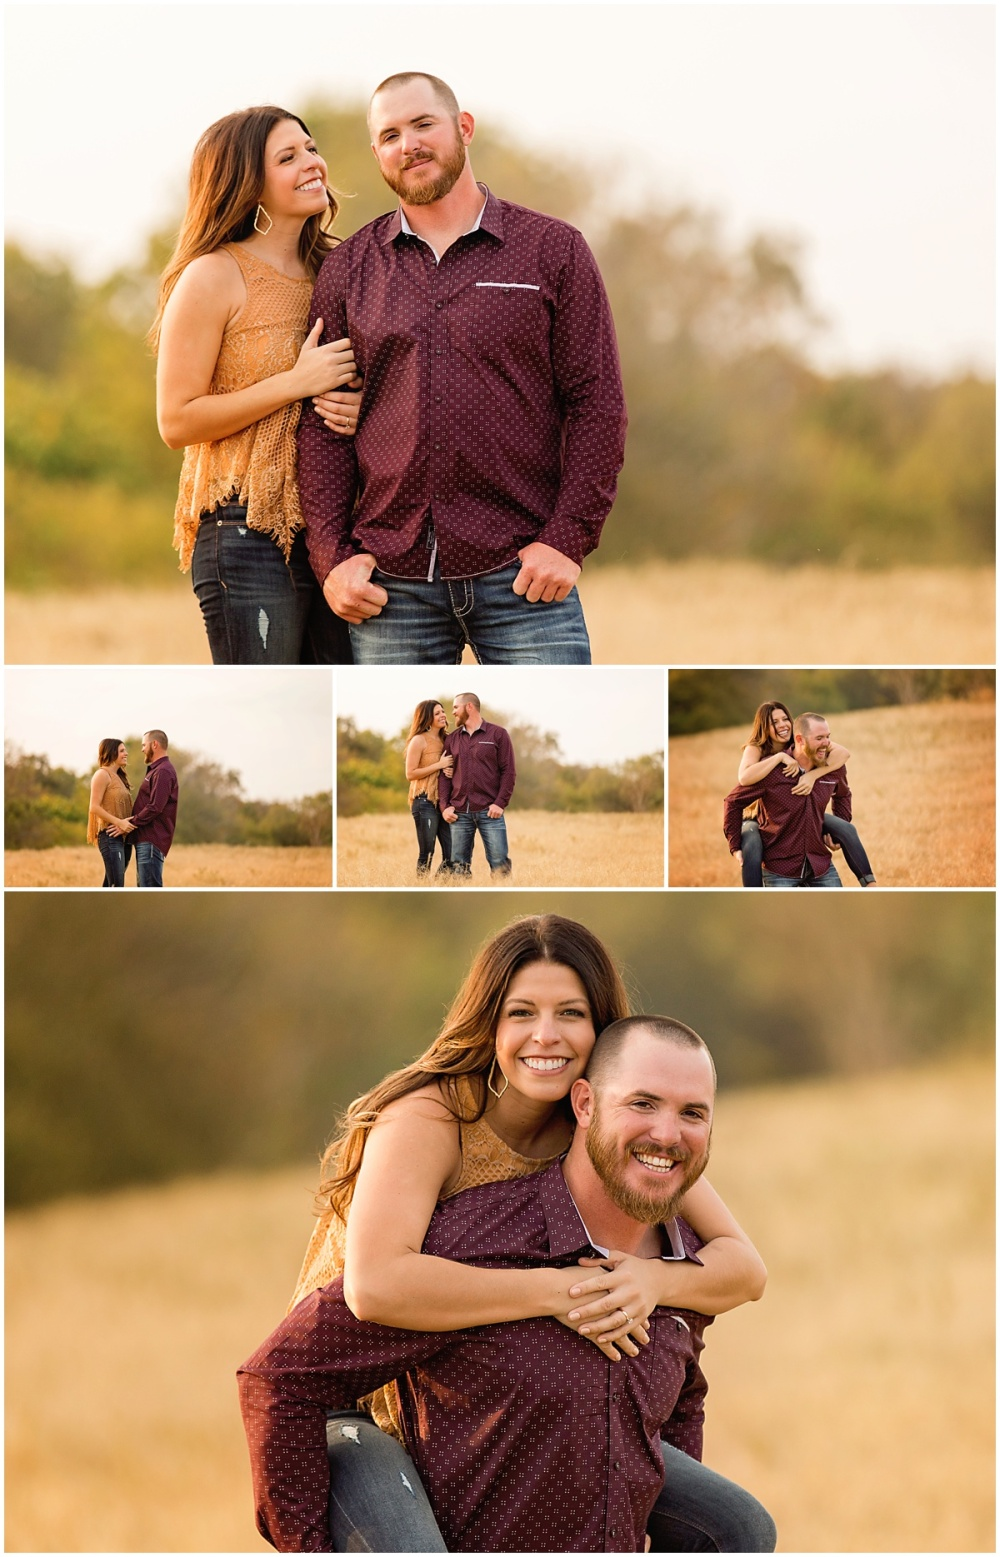 Family-Children-Maternity-Portraits-San-Antonio-Hill-Country-Texas-Carly-Barton-Photography_0083.jpg